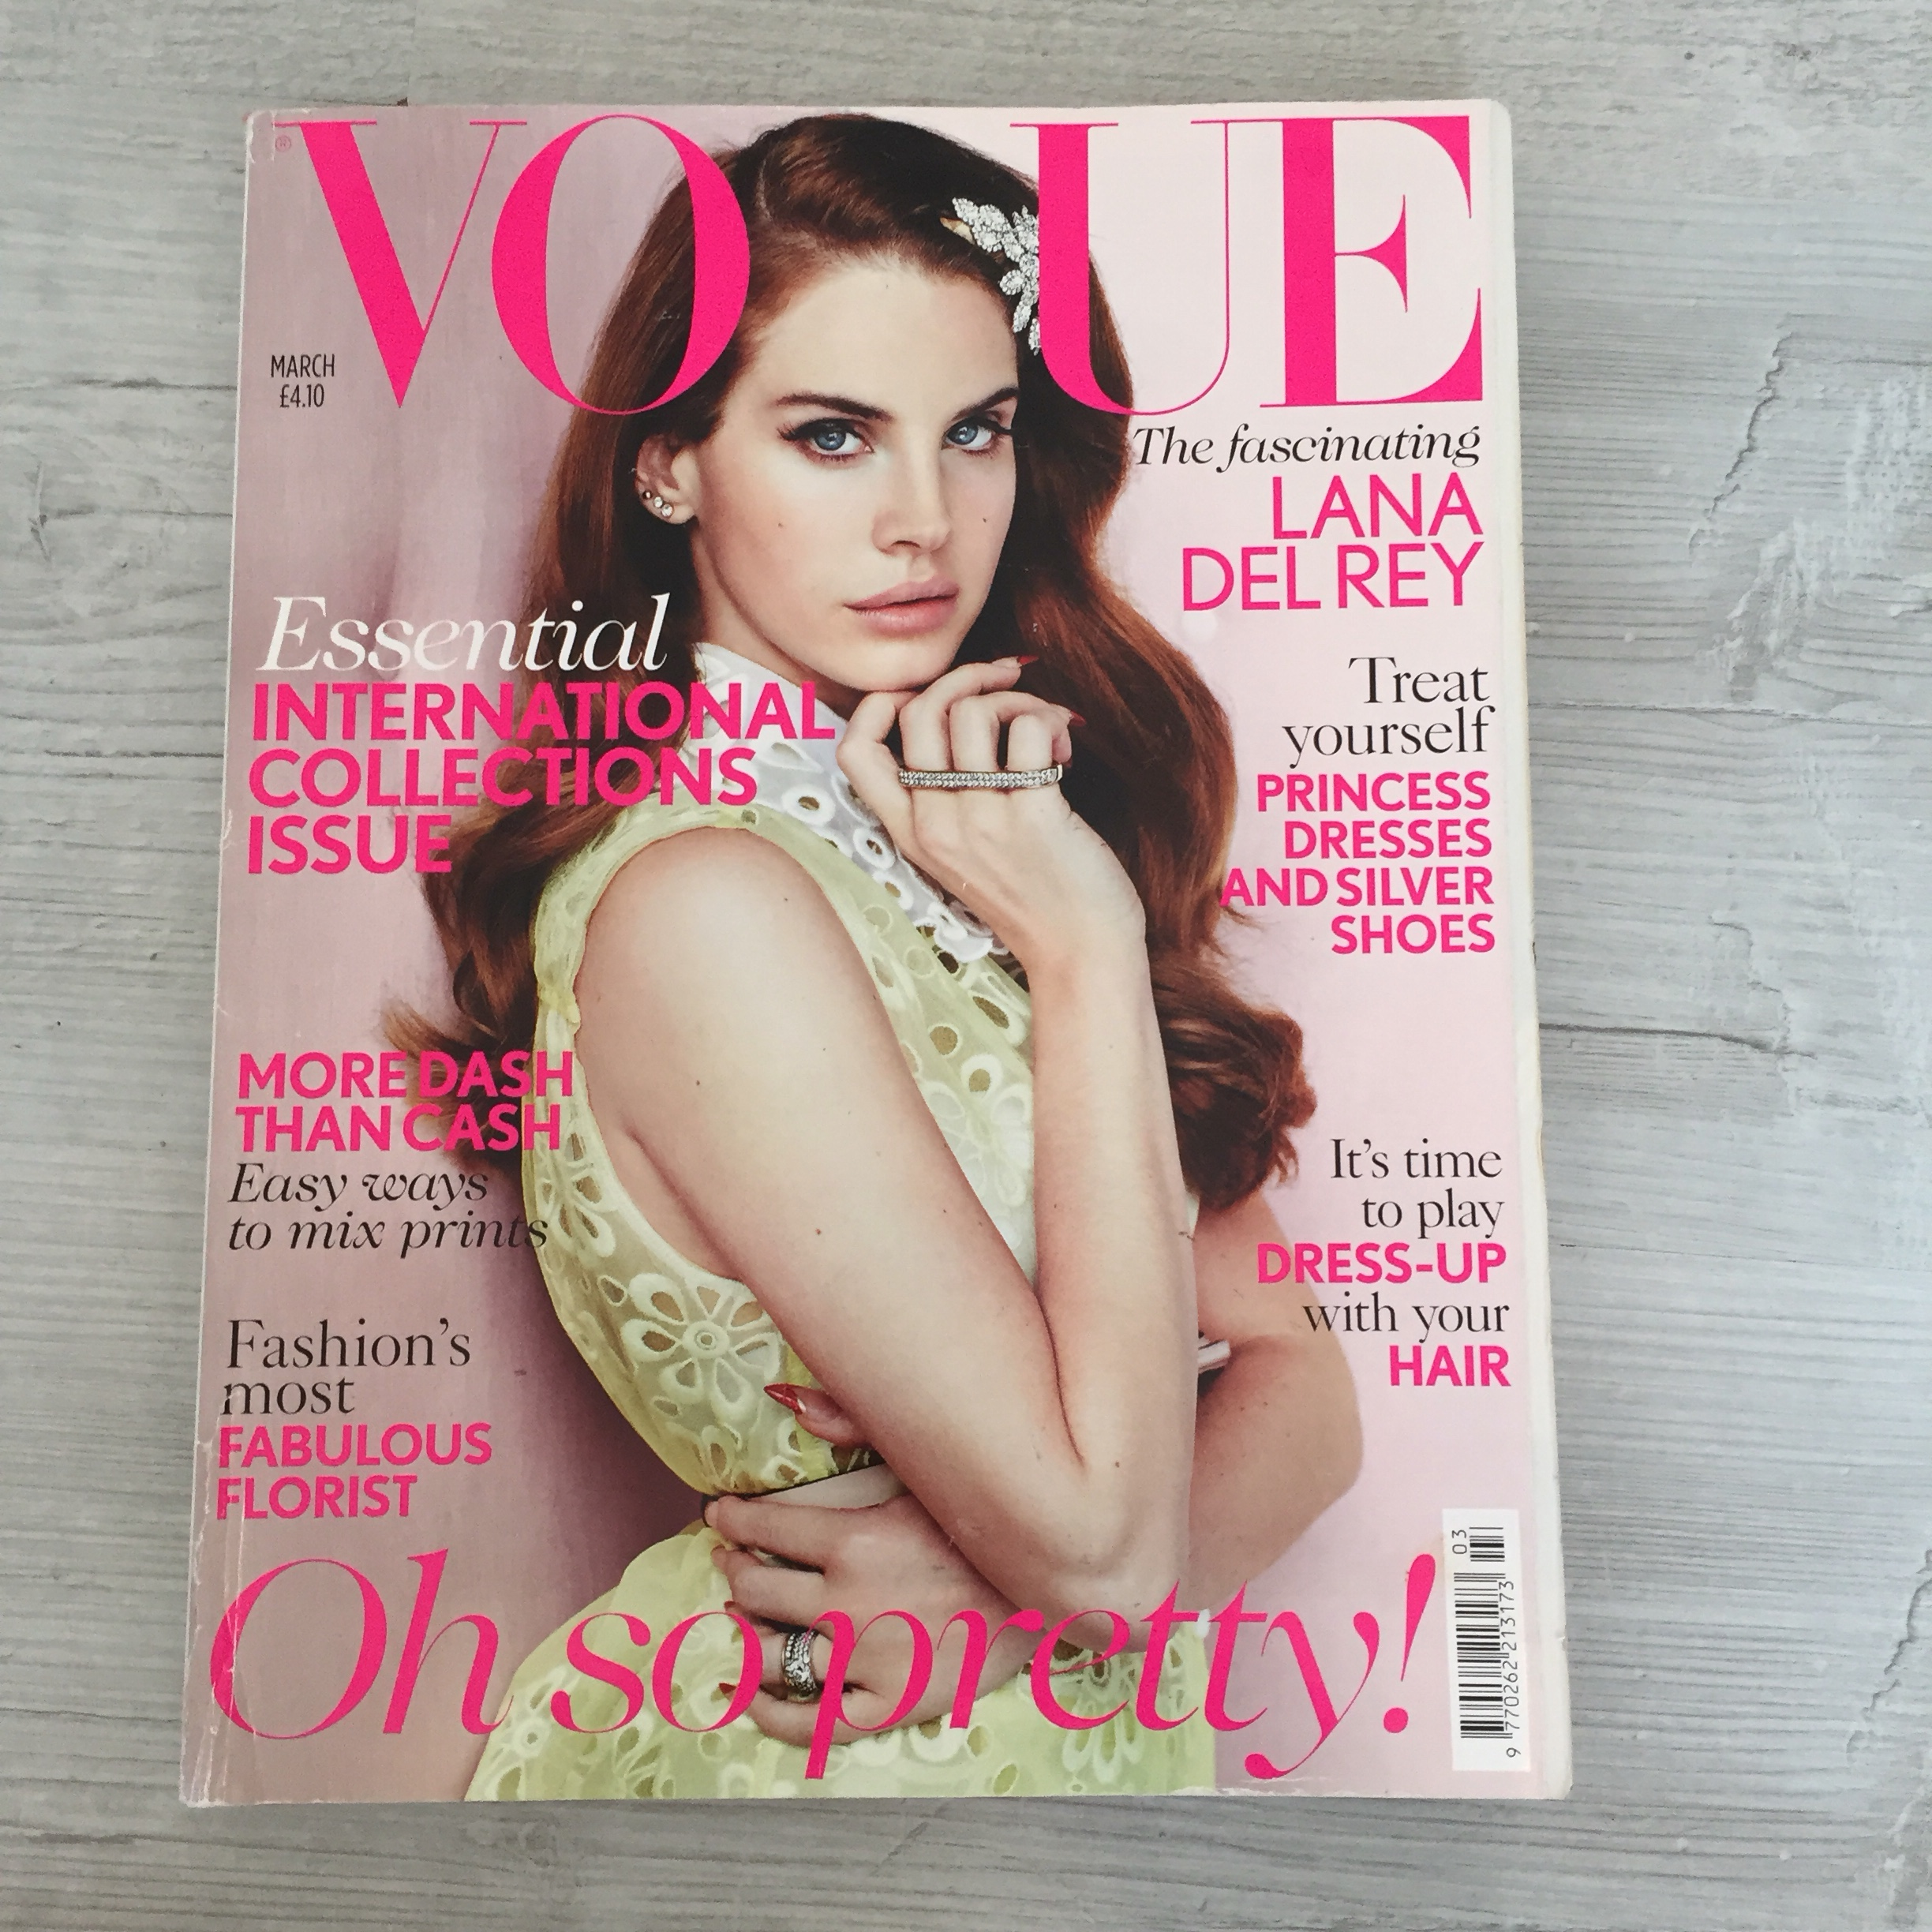 Lana Del Rey Iconic Pink Vogue Cover Magazine From Depop